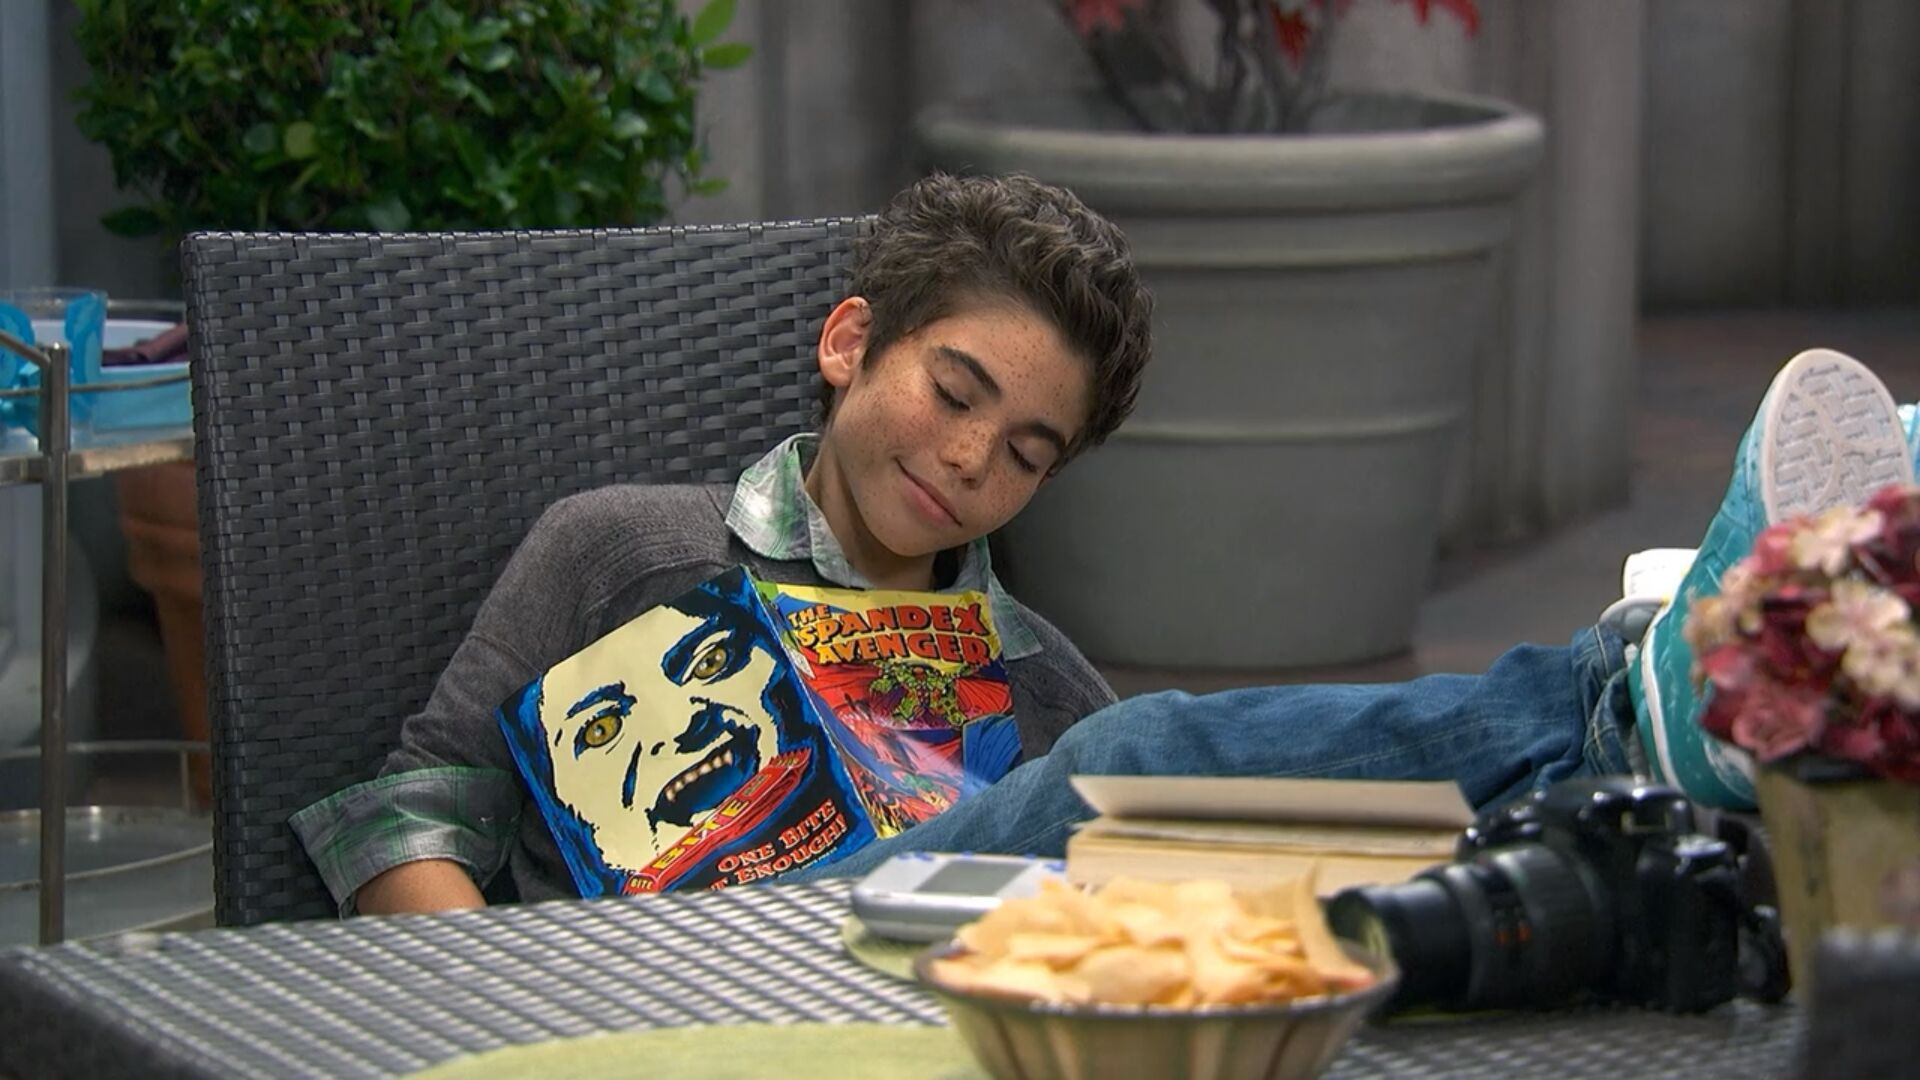 Shocking demise of Disney star Cameron Boyce